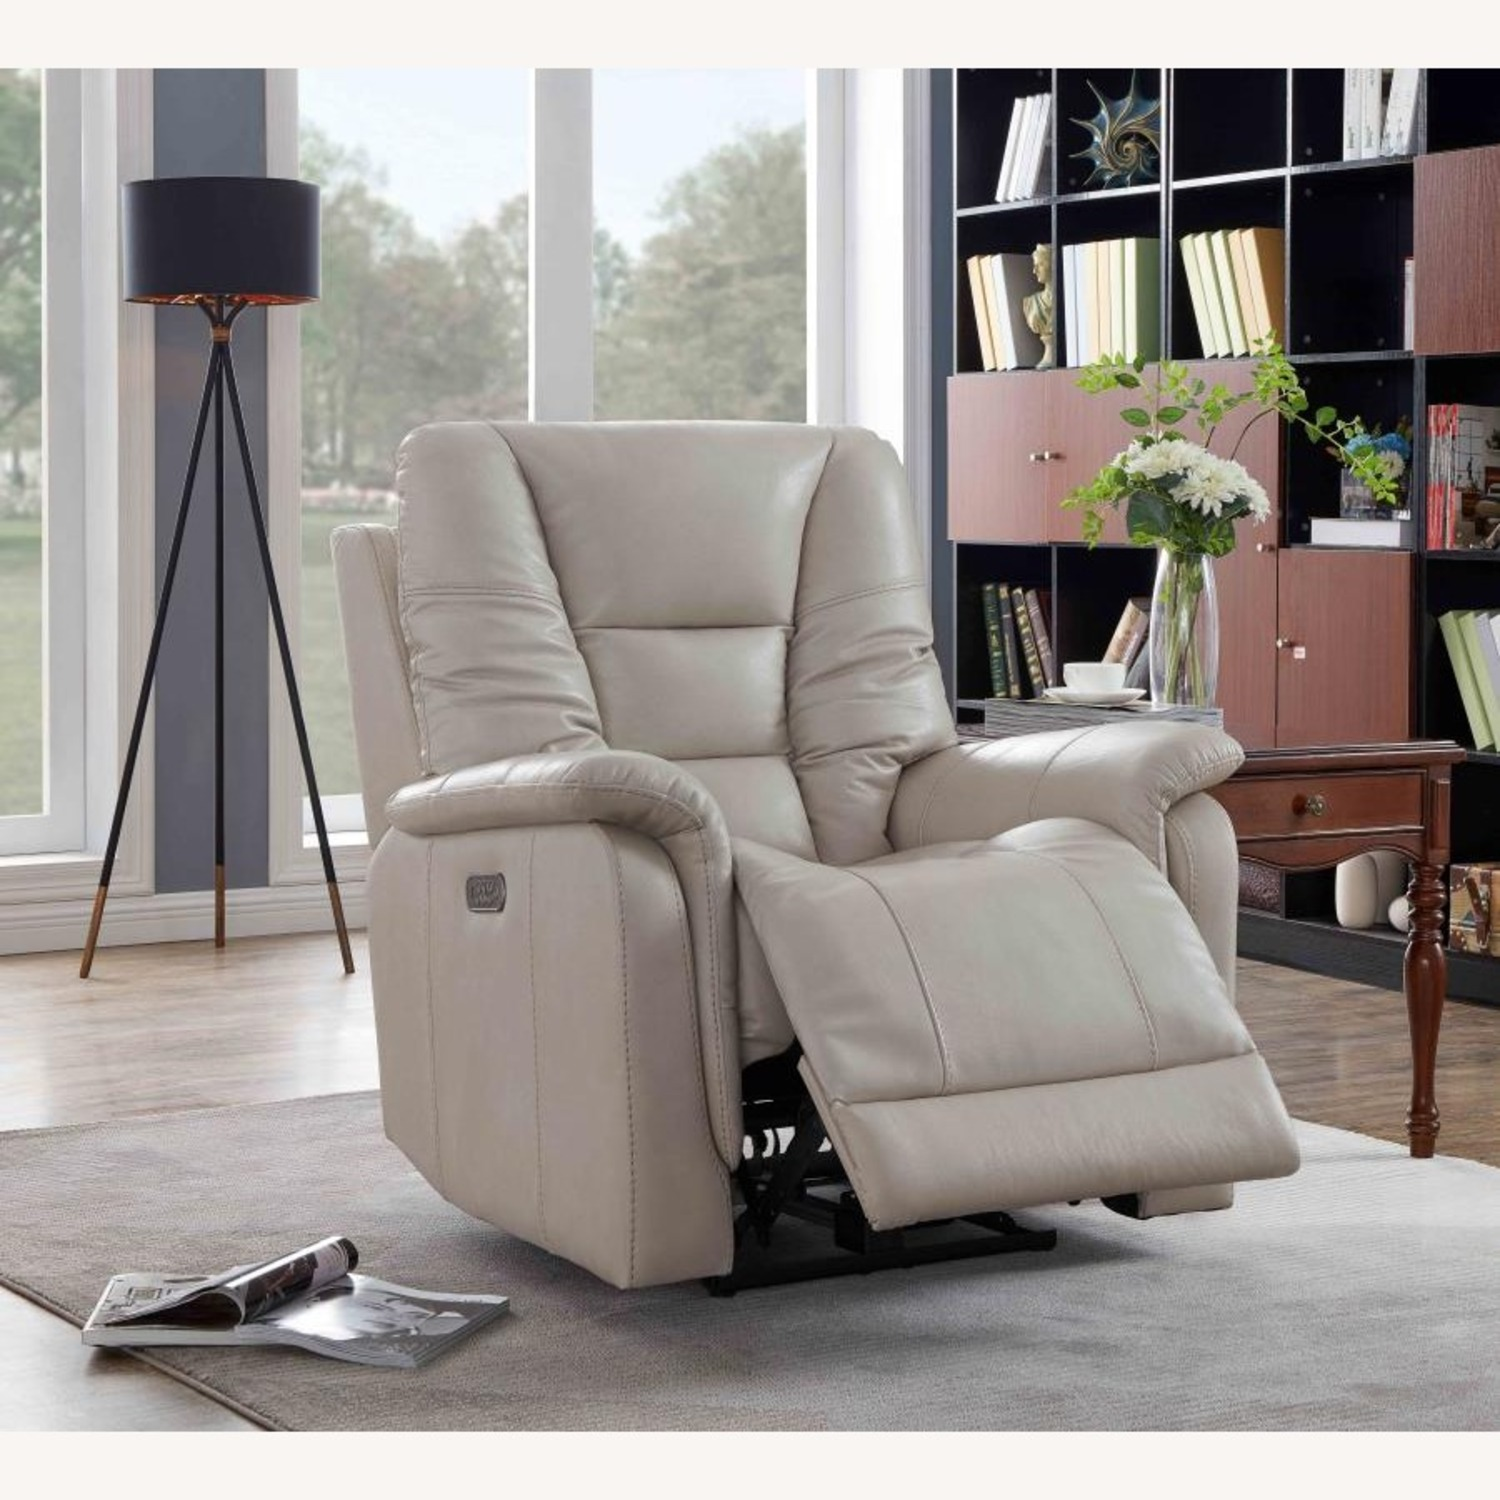 Power Recliner In Cream Top Grain Leather - image-8